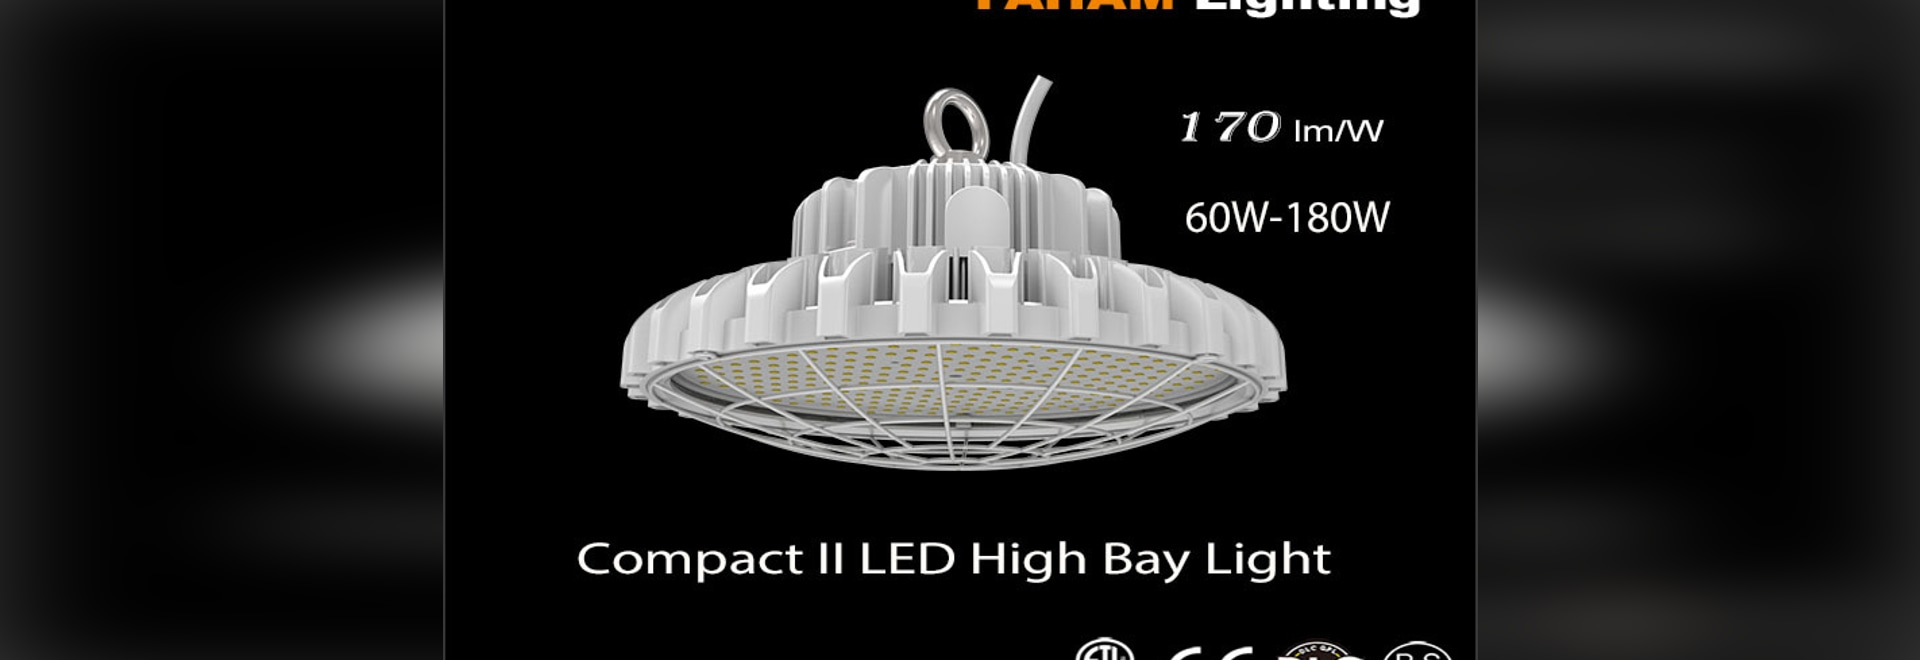 Compact II LED High Bay Light